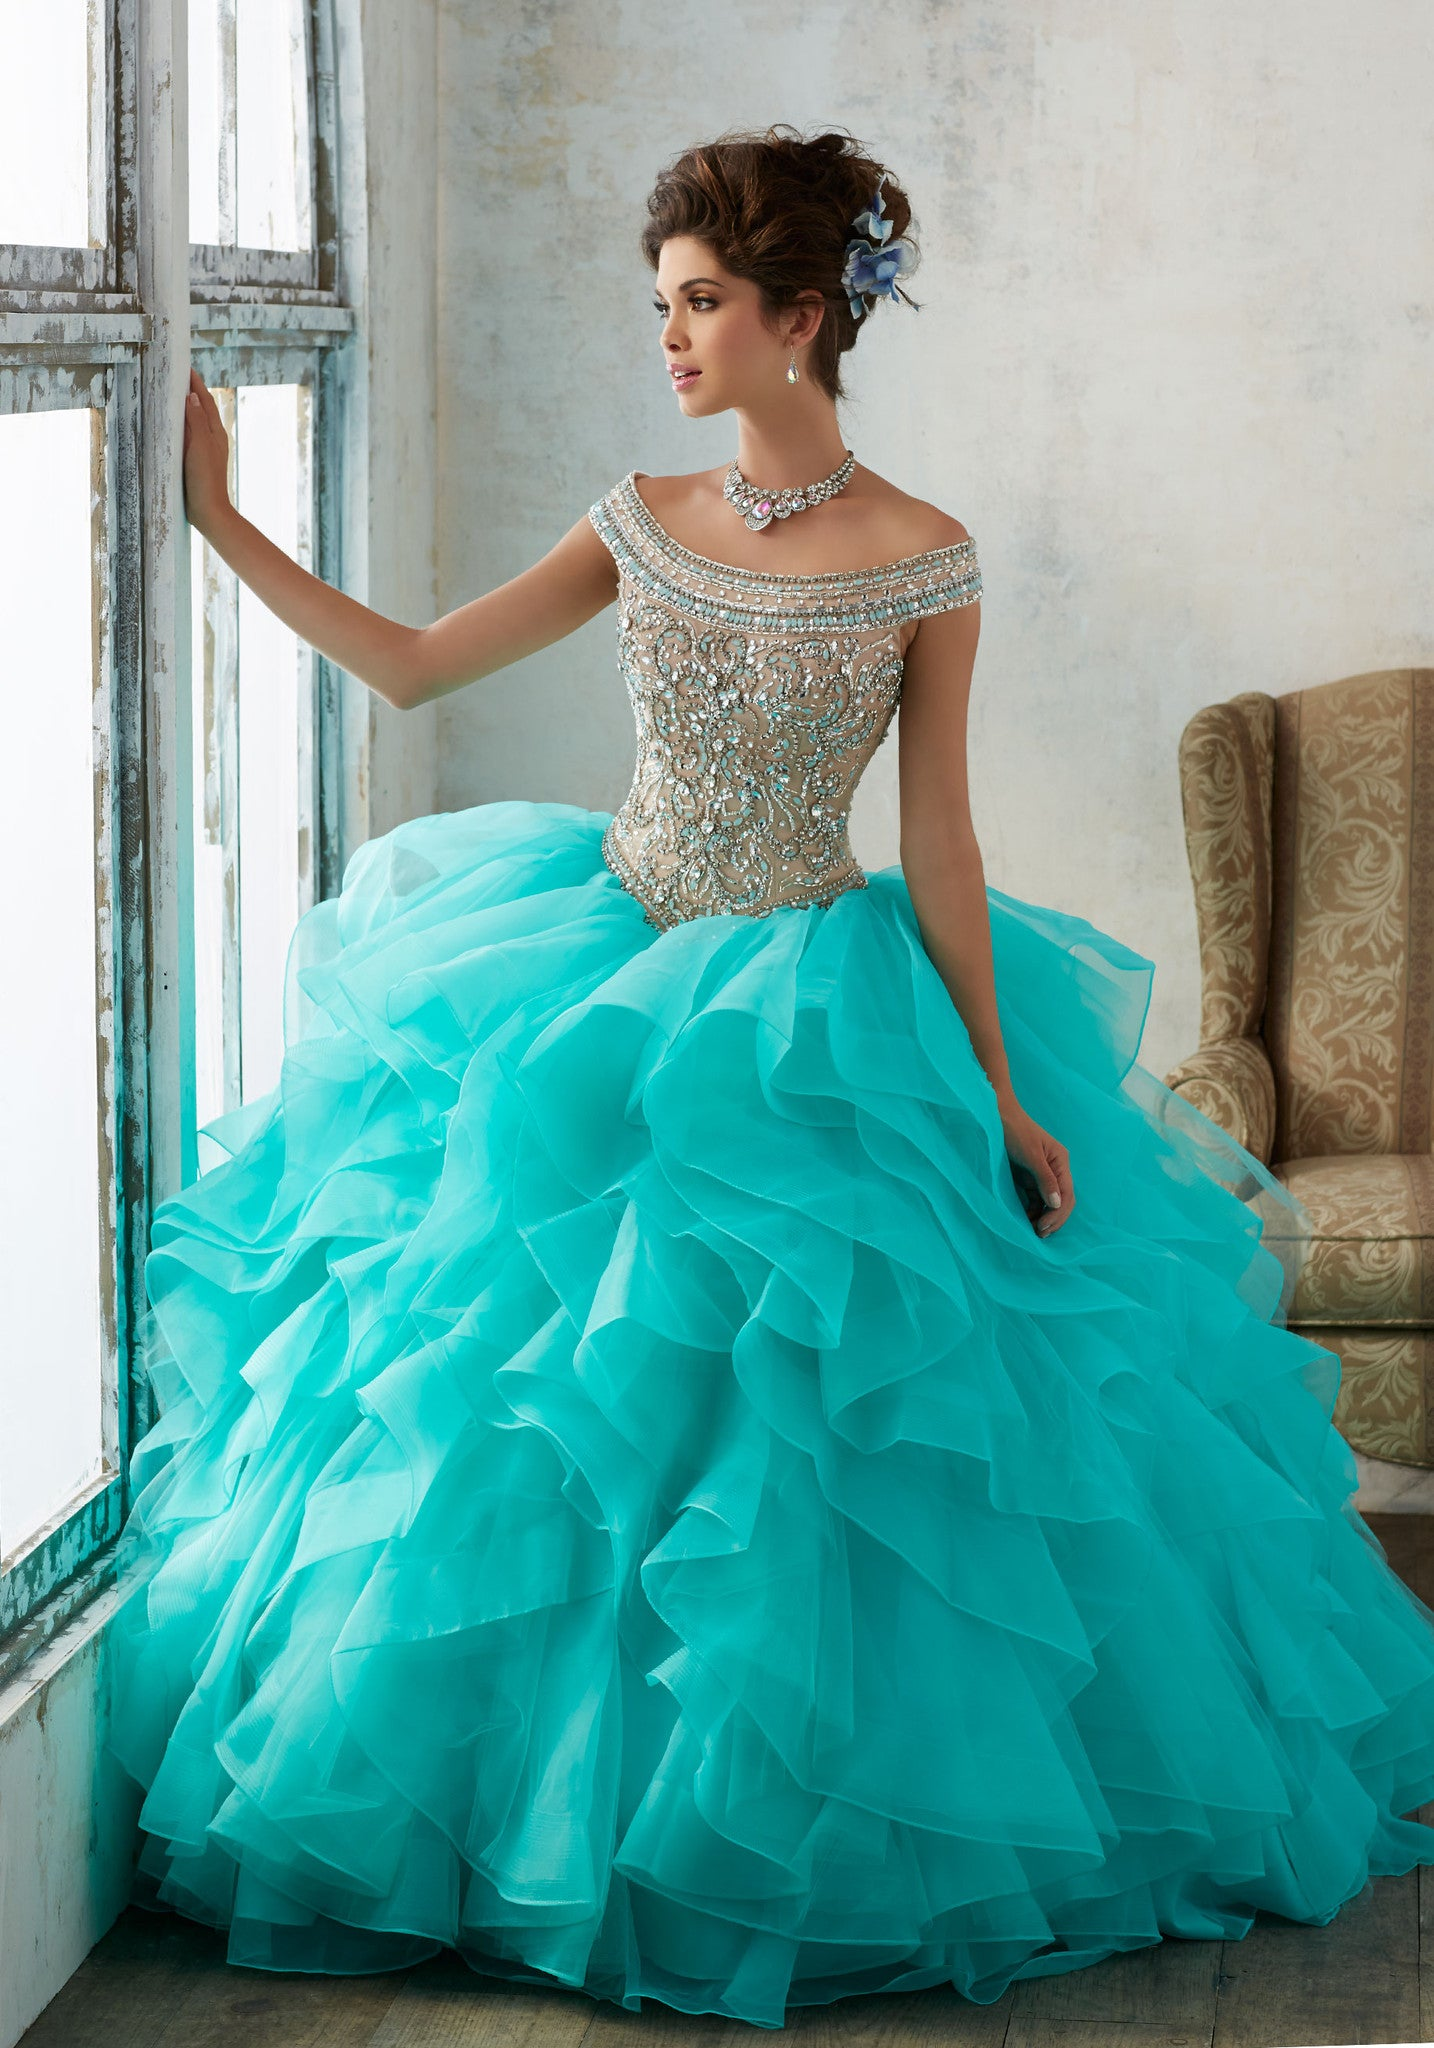 4a137629fa9 VIZCAYA BY MORI LEE 89138 QUINCEANERA DRESS - QuinceDresses.com